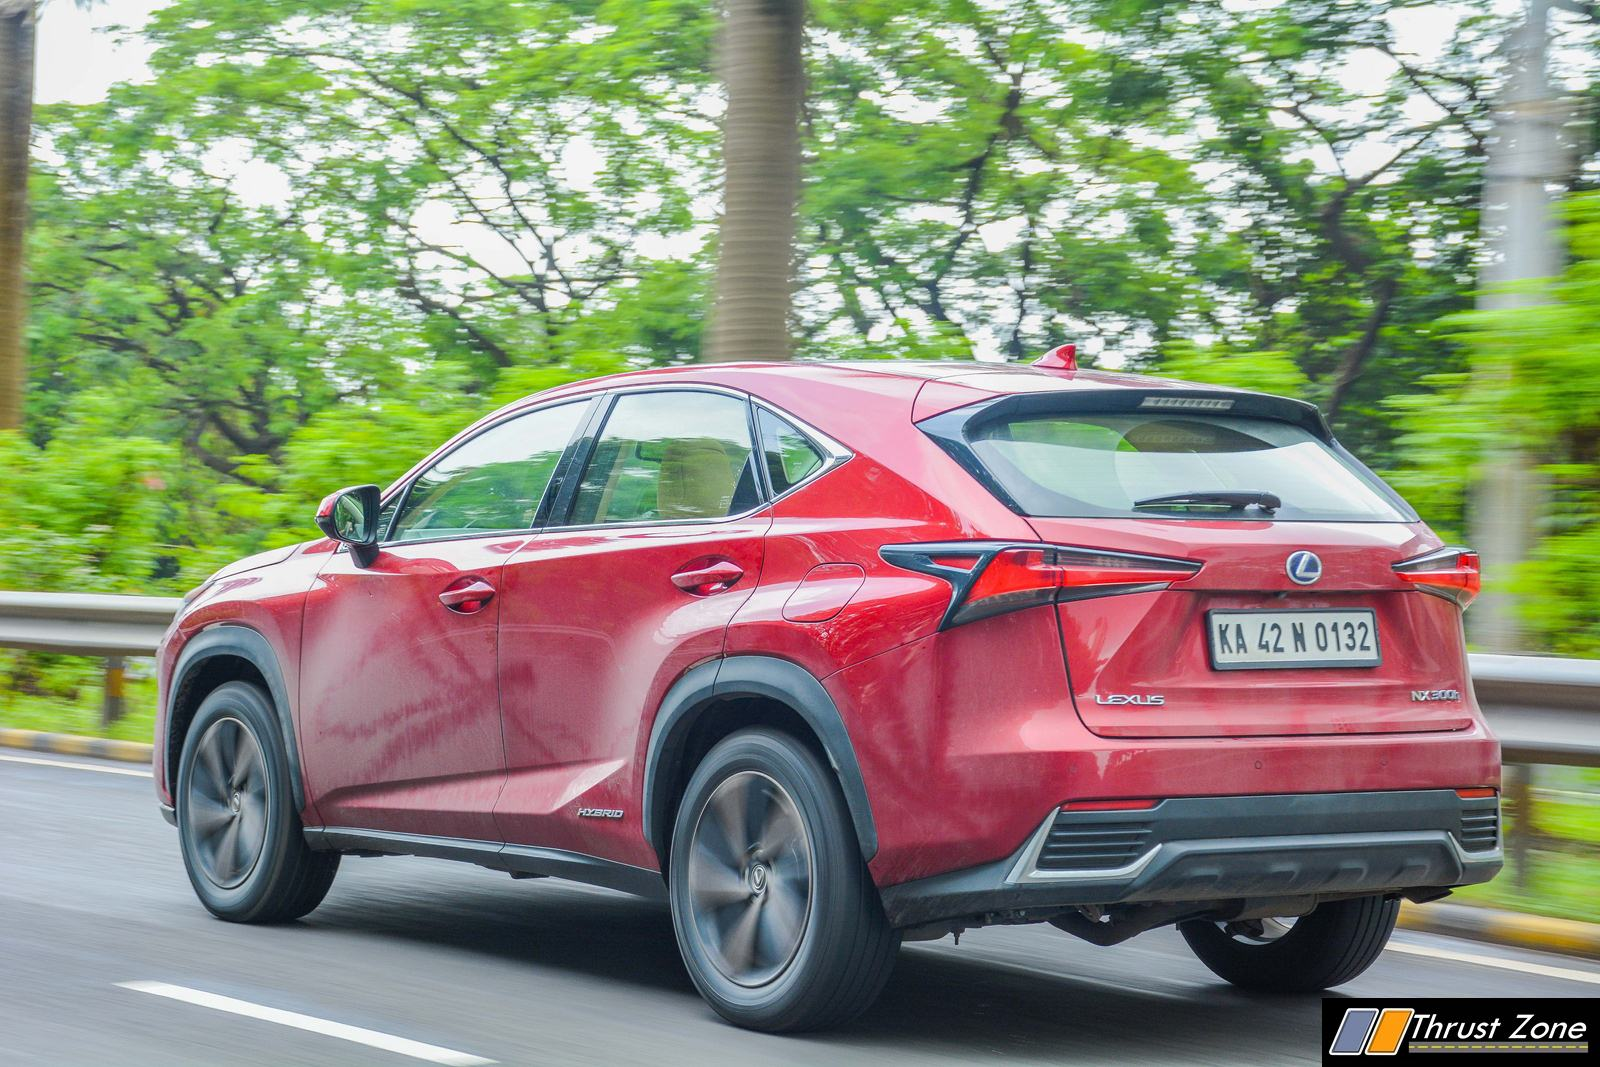 https://www.thrustzone.com/wp-content/uploads/2018/07/2018-Lexus-NX300h-India-Review-6.jpg